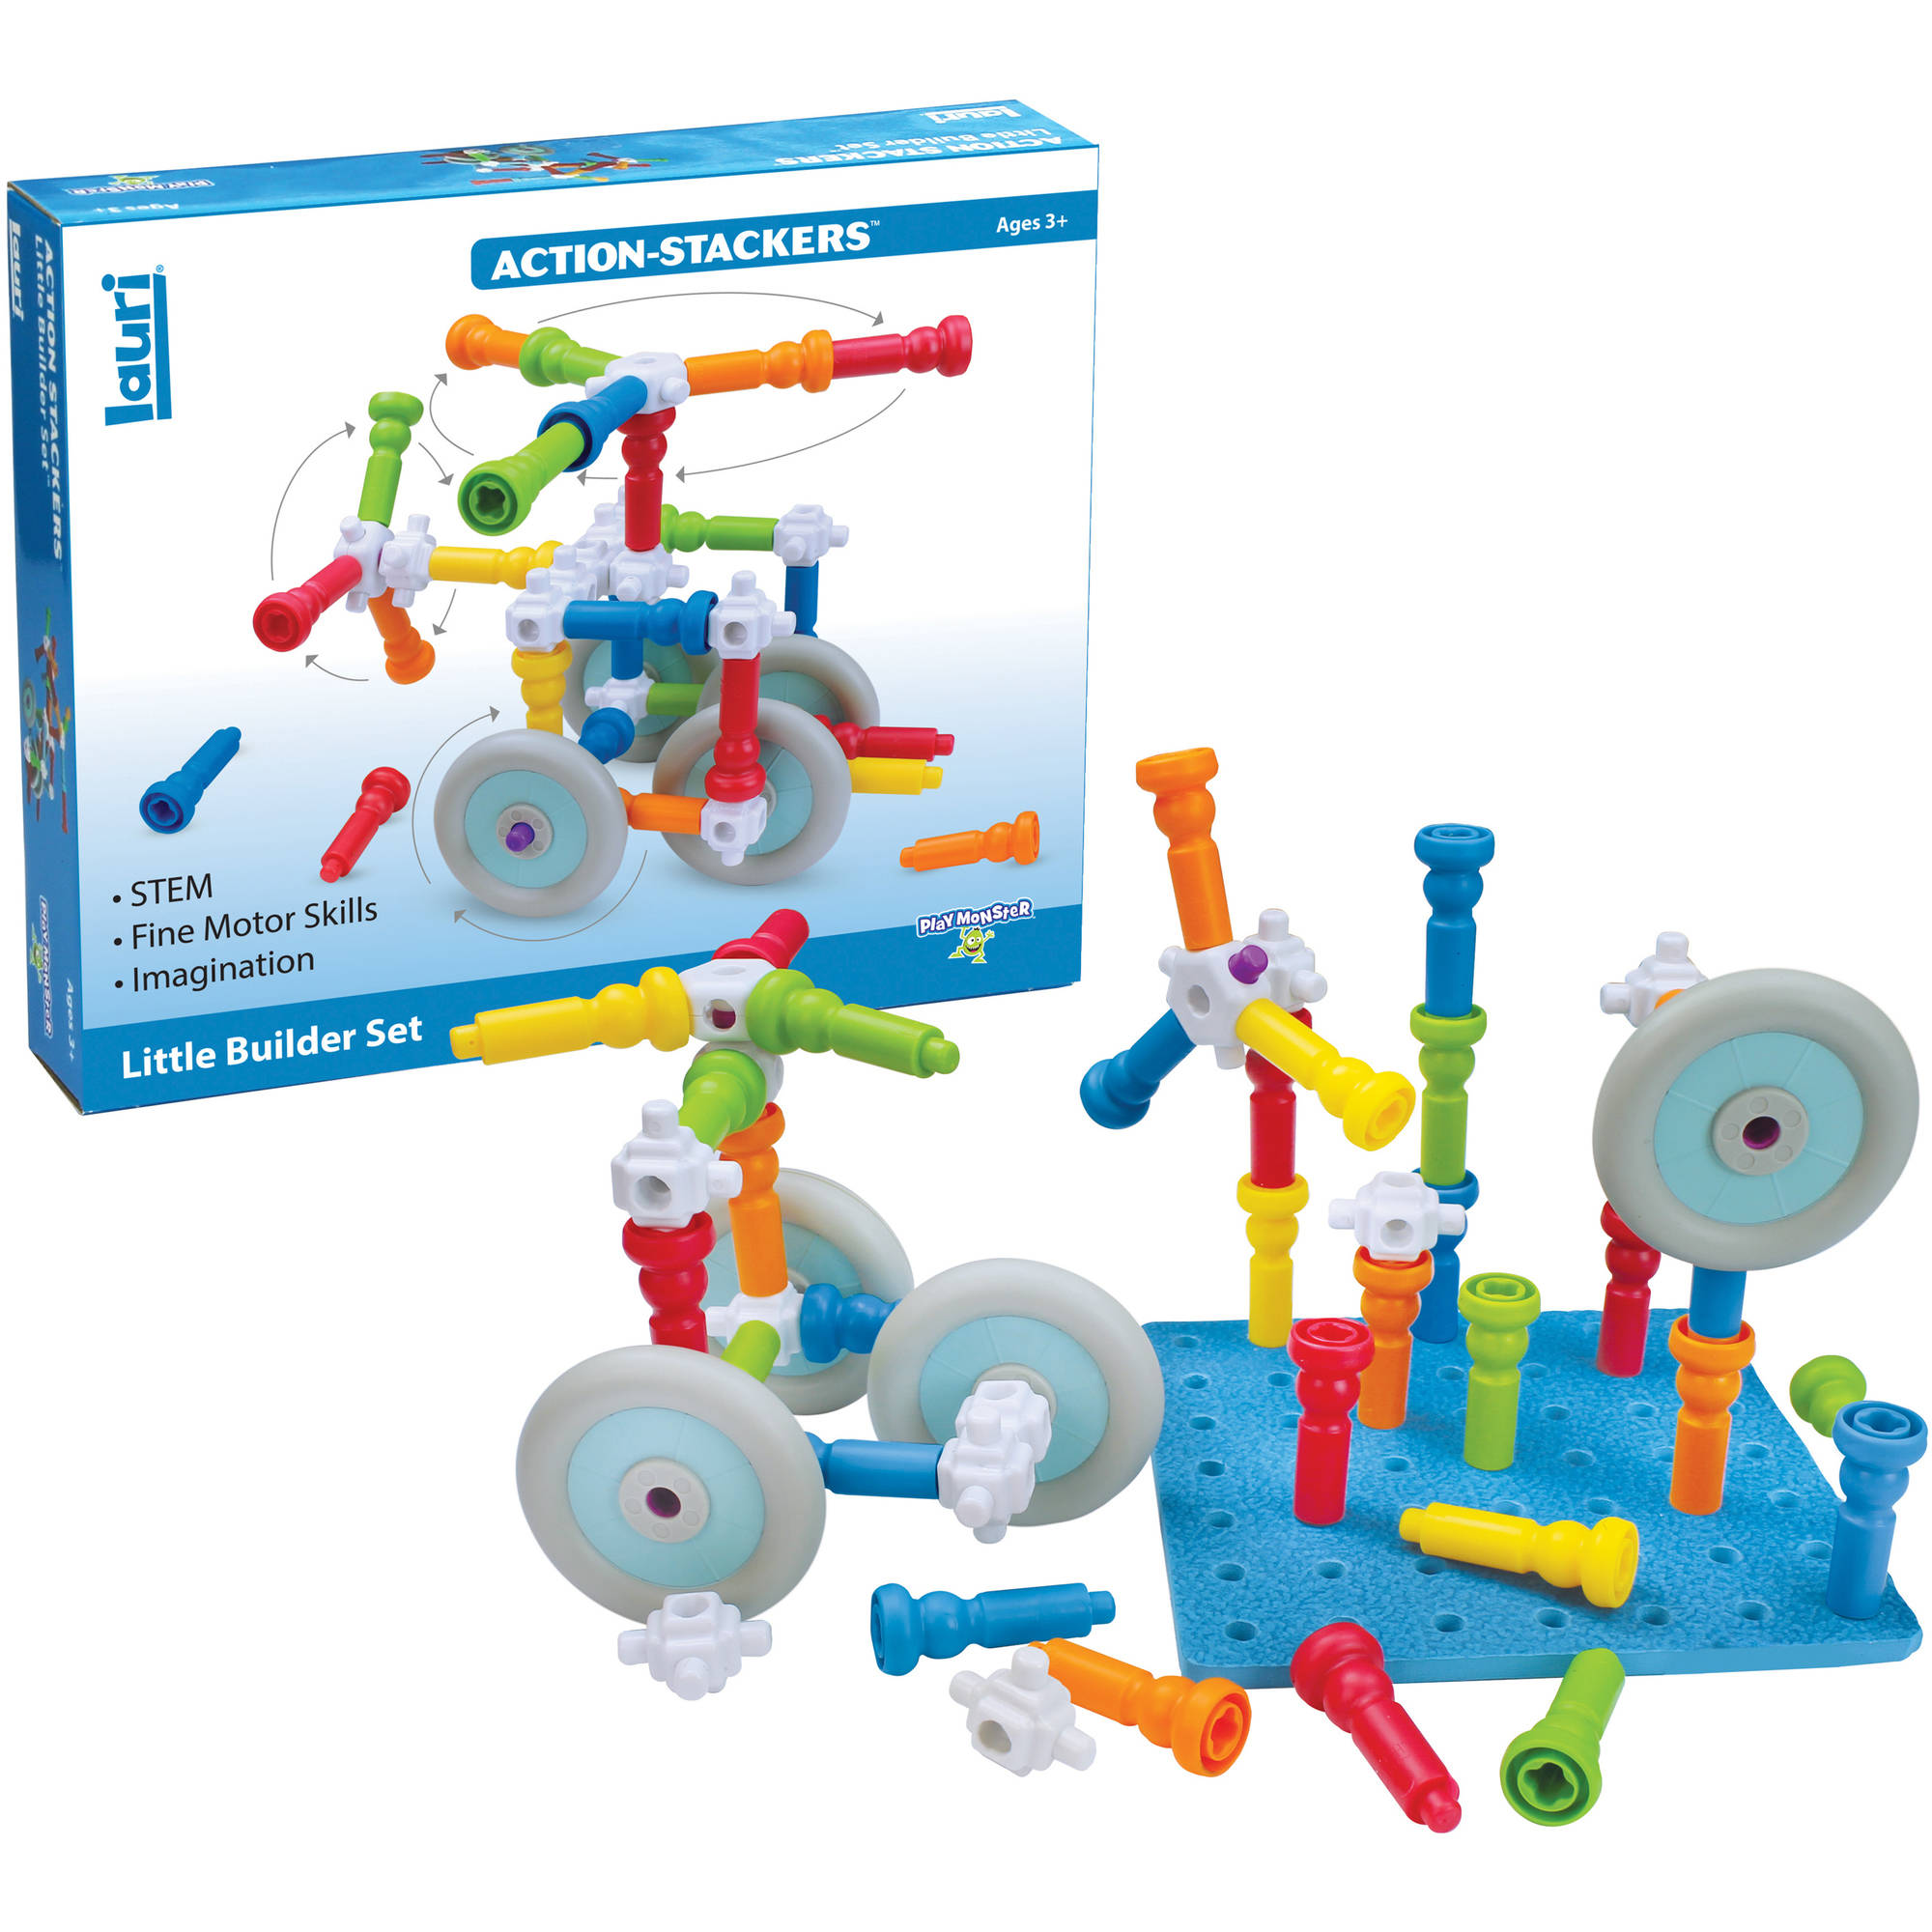 Action-Stackers Little Builder Set